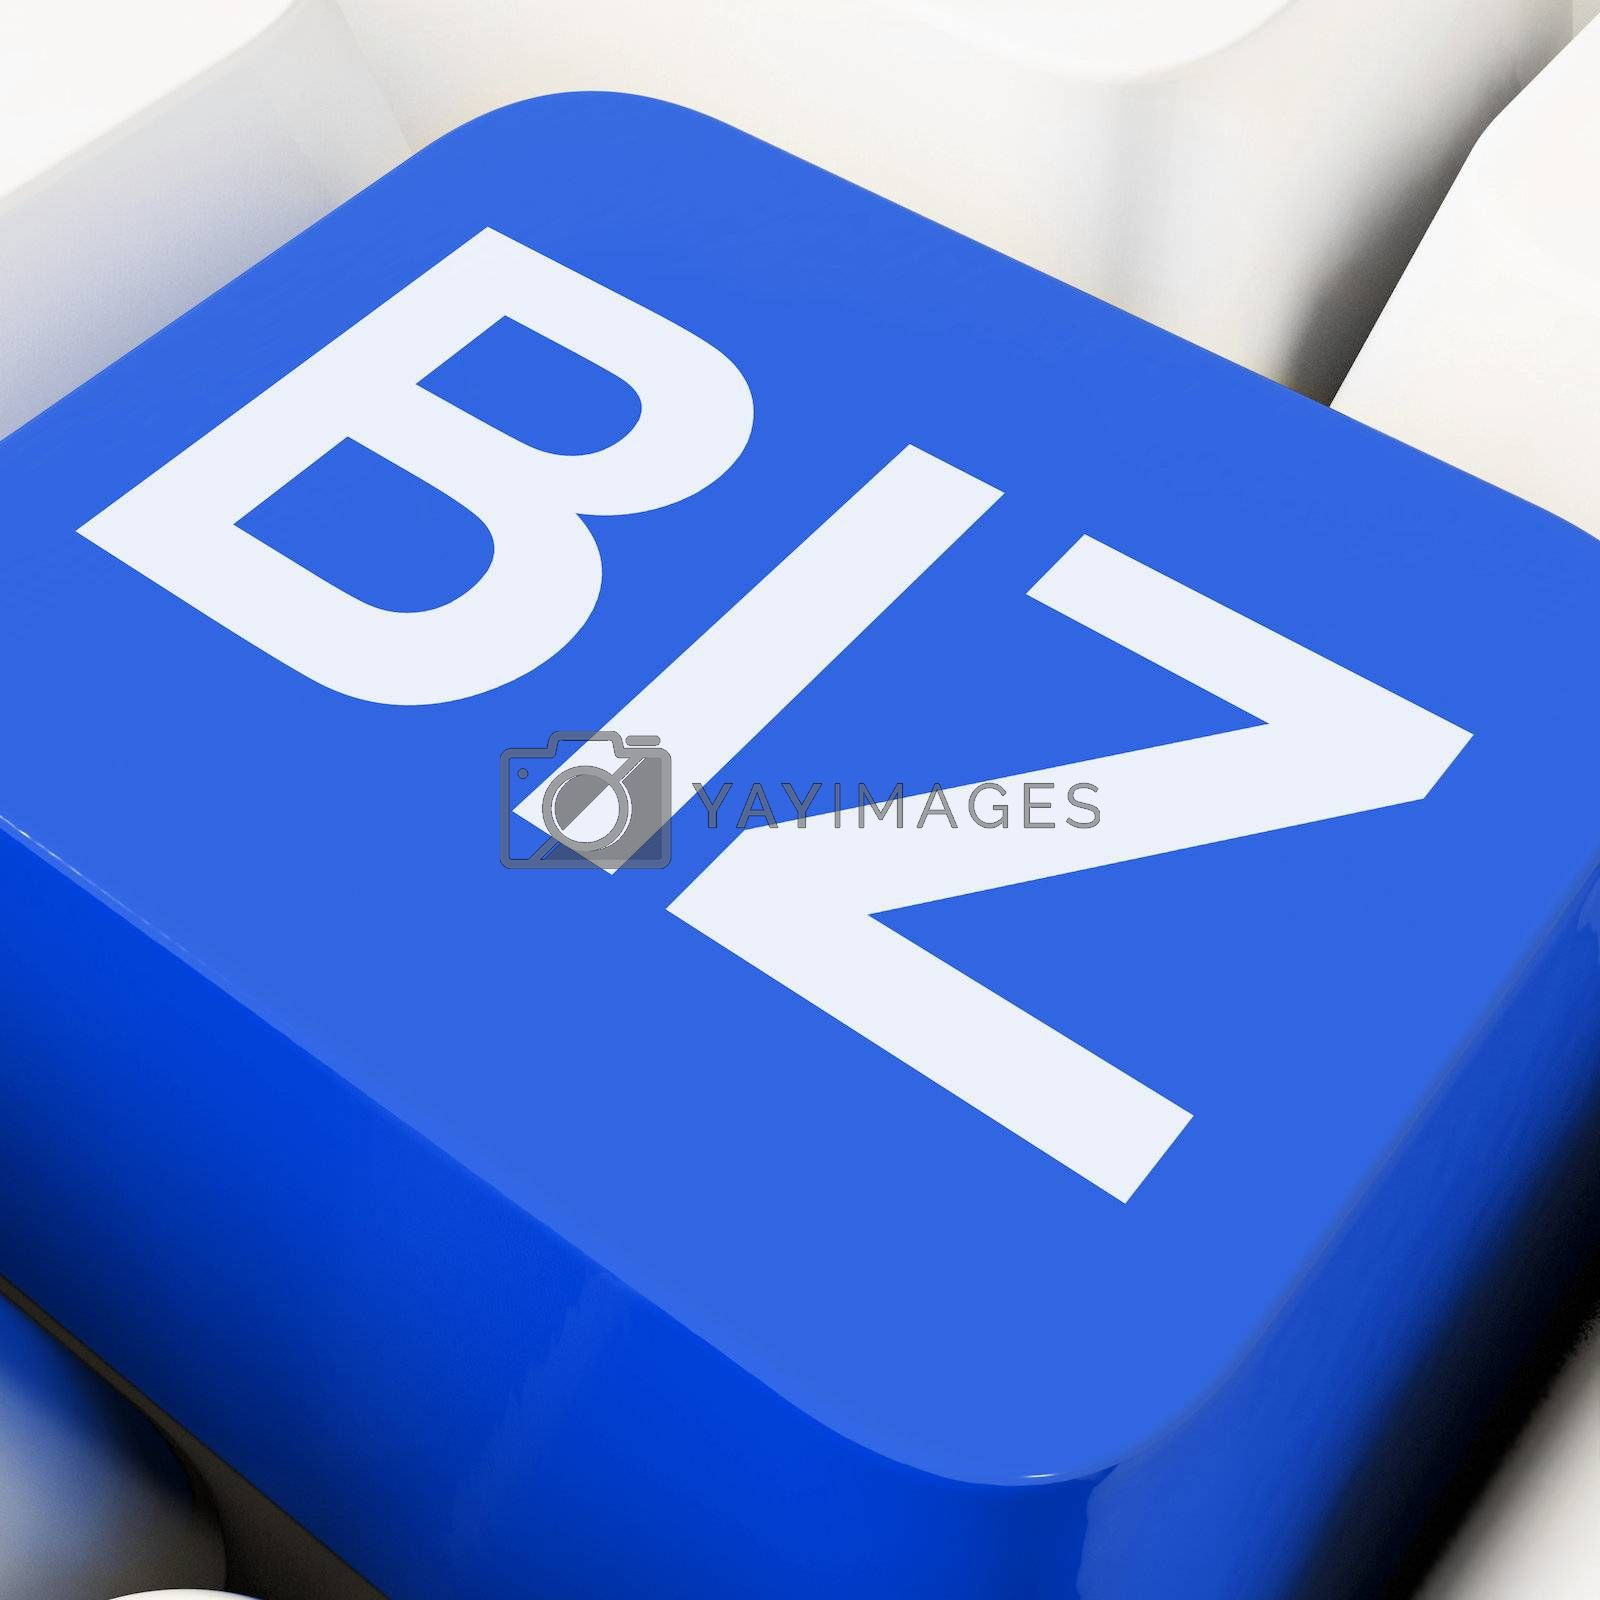 Biz Key Shows Online Or Web Business by stuartmiles